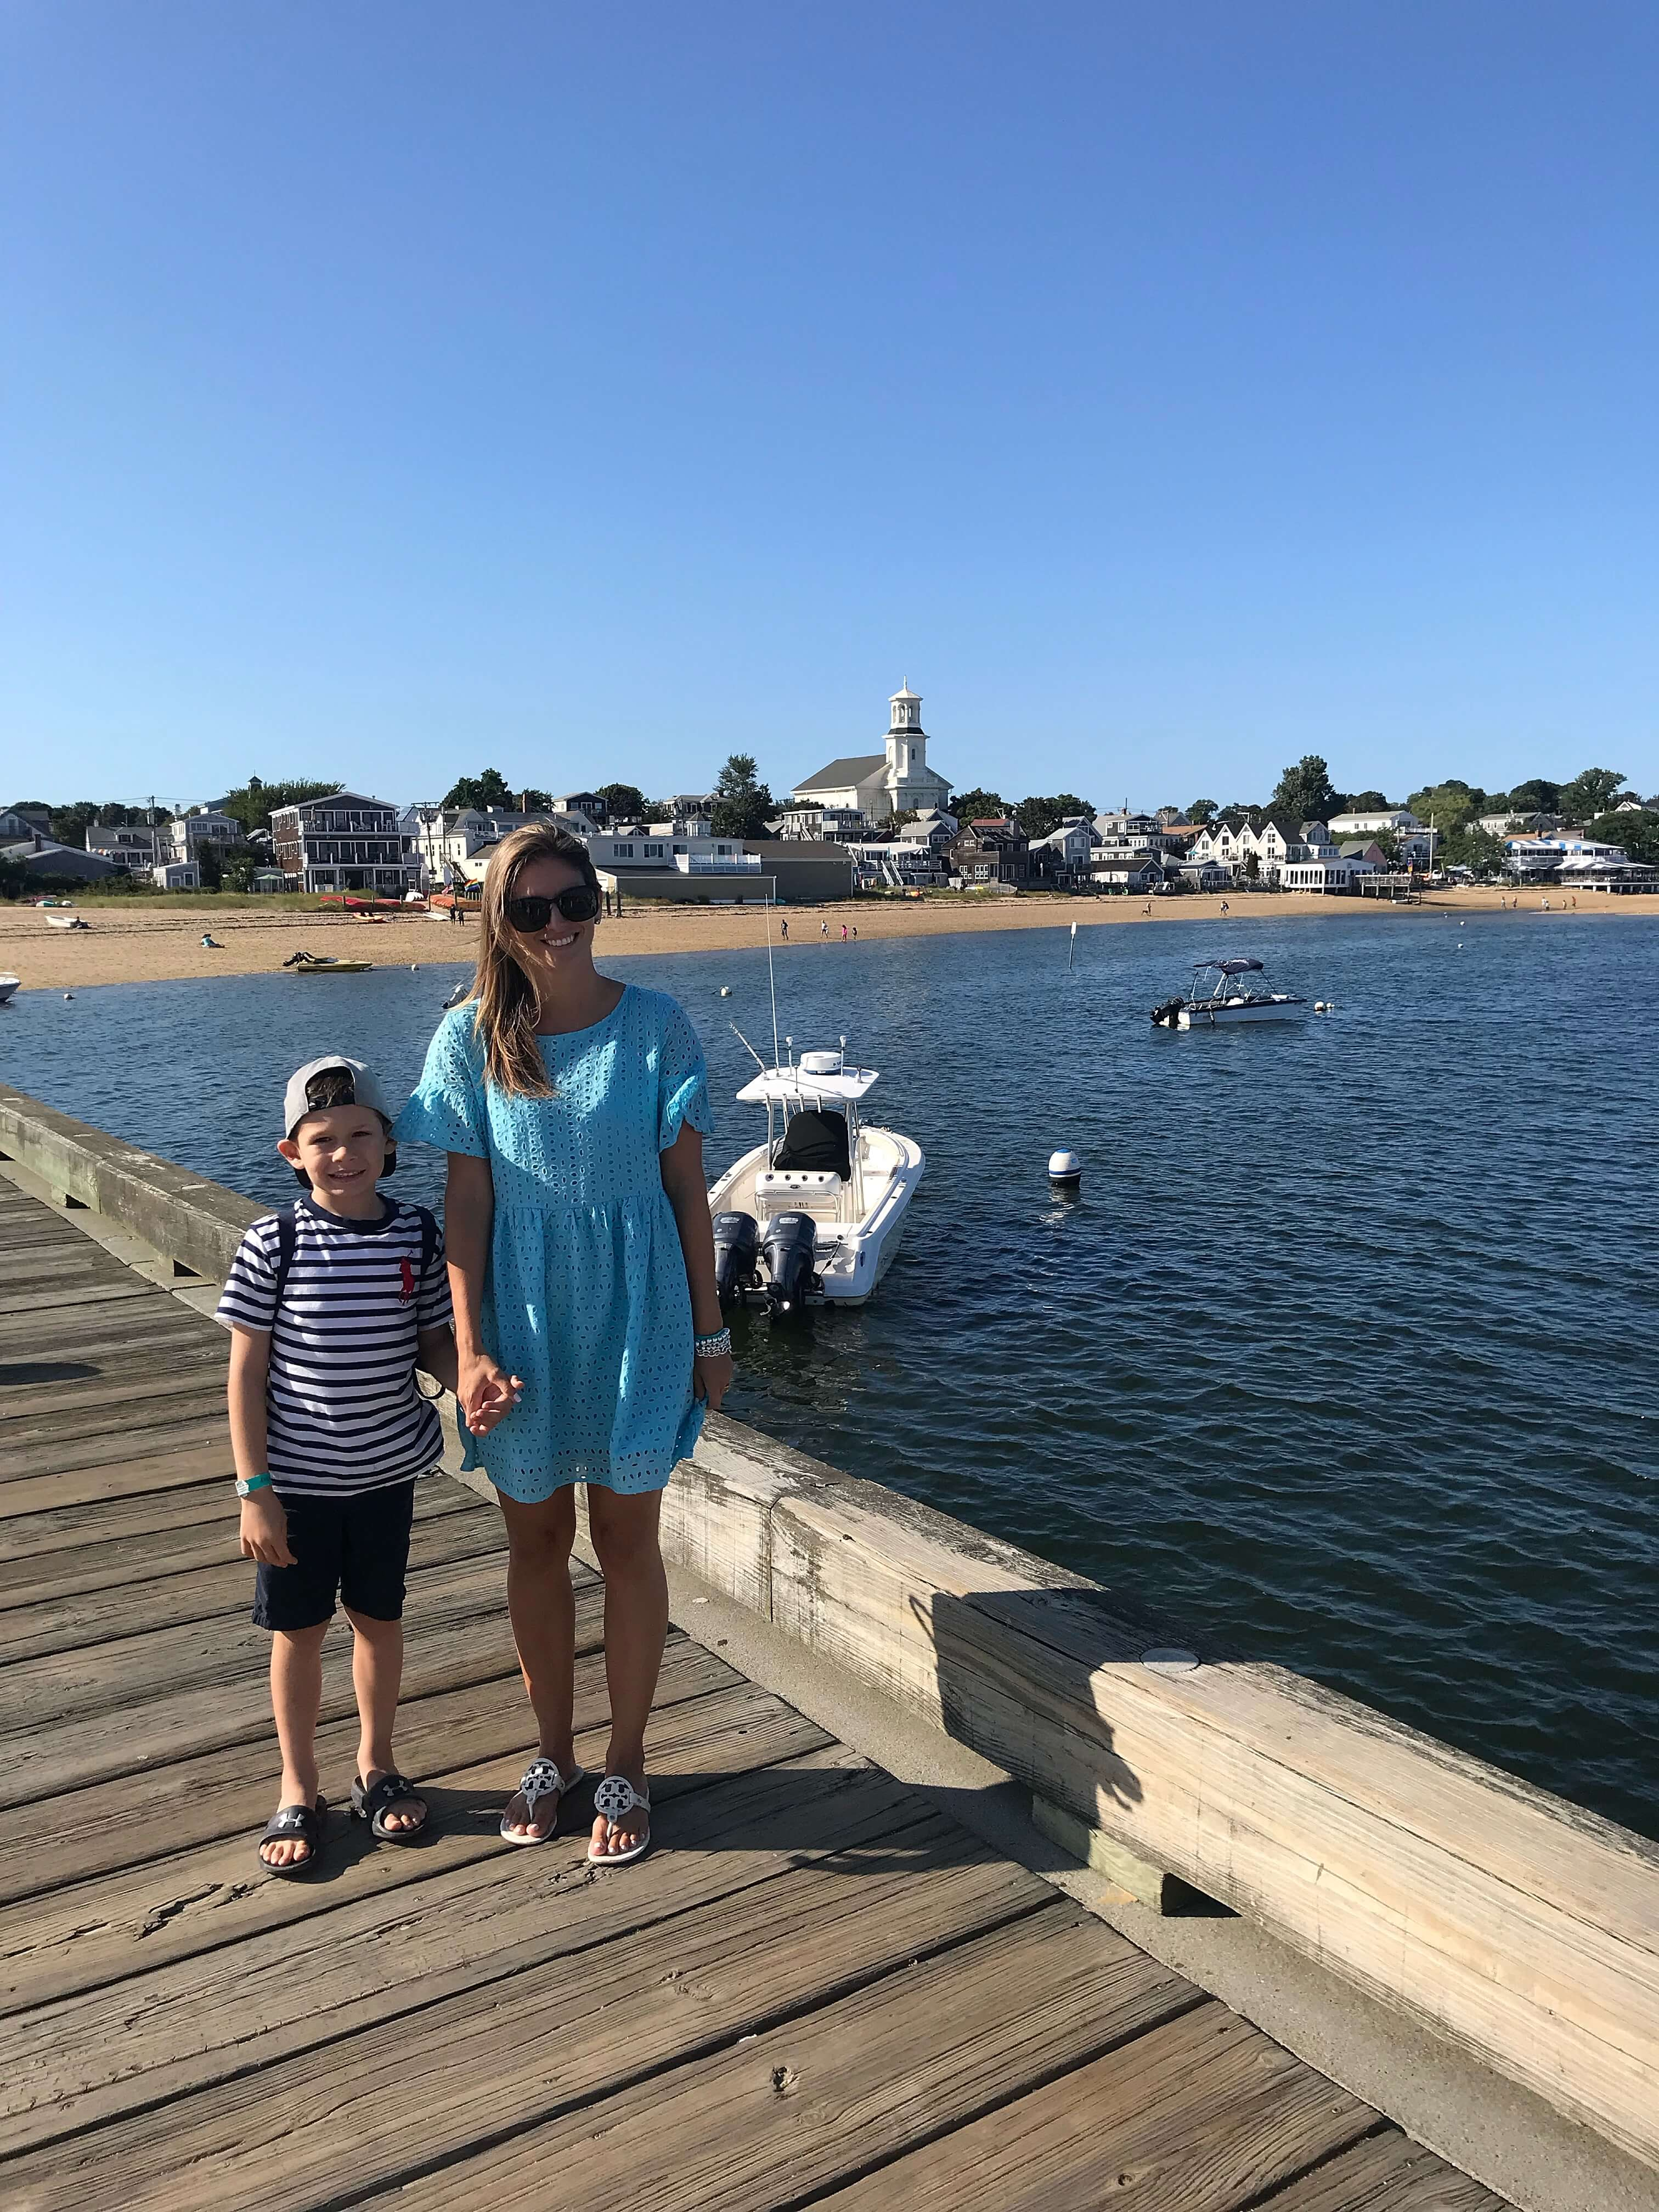 Review of Our Stay at the Cape Codder Resort and Spa